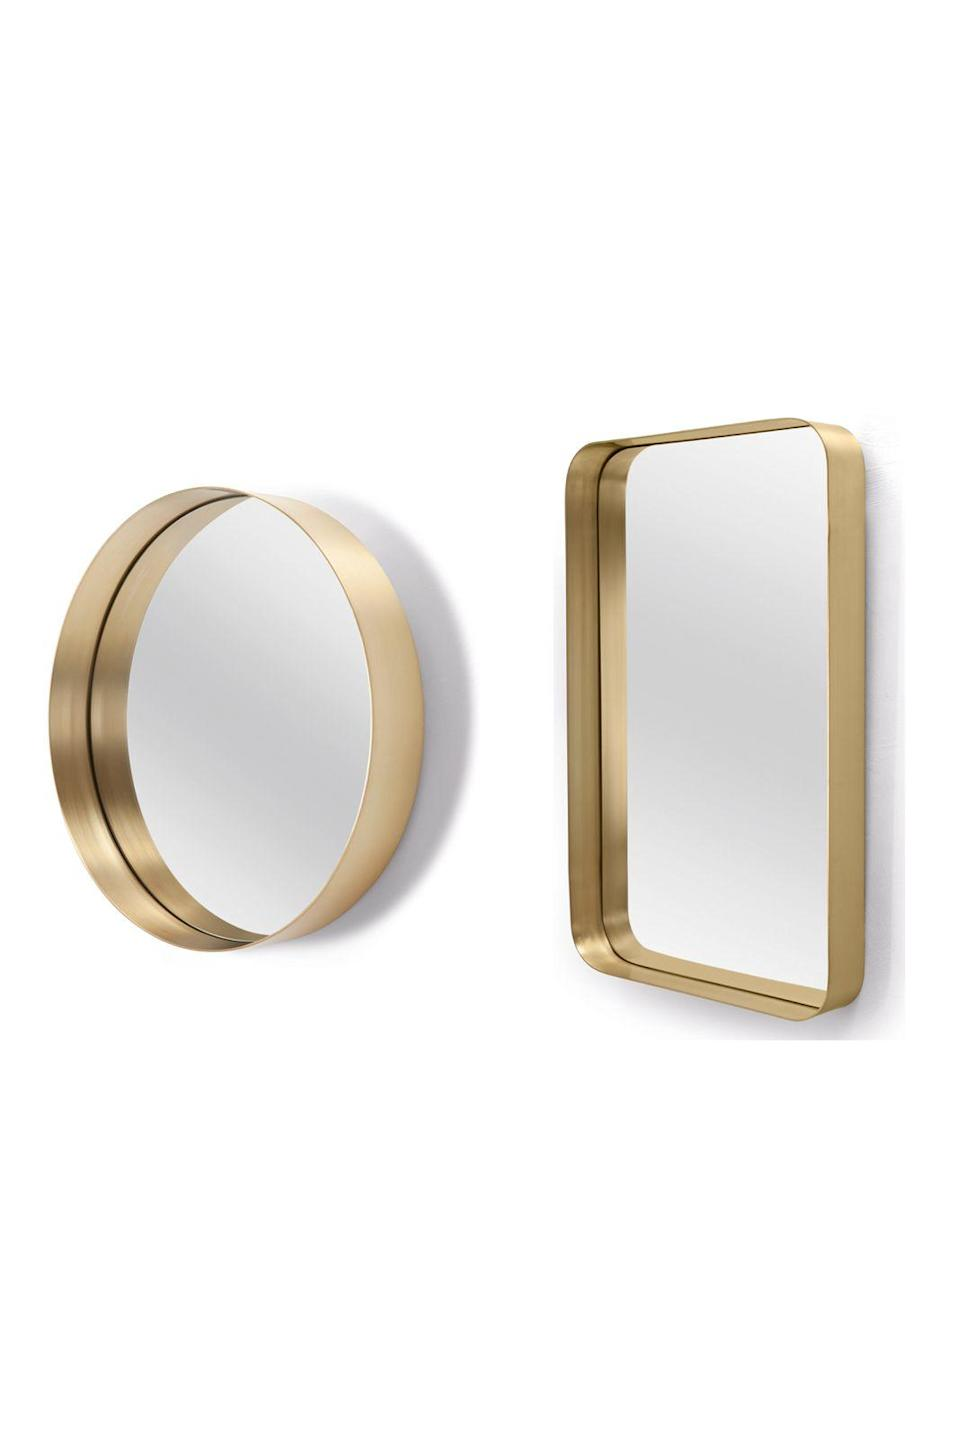 """<p><strong>On reflection</strong></p><p>Give walls an edge, or to be more accurate, a brass-edged mirror with made.com's Alana designs. Equal parts luxe and modern, they also have the added bonus of a ledge for emergency lipsticks.</p><p>Round mirror £99, <a href=""""http://www.made.com/alana-round-mirror-brass"""" rel=""""nofollow noopener"""" target=""""_blank"""" data-ylk=""""slk:made.com"""" class=""""link rapid-noclick-resp"""">made.com</a>, rectangular mirror £129, <a href=""""http://www.made.com/alana-rectangular-mirror-brass"""" rel=""""nofollow noopener"""" target=""""_blank"""" data-ylk=""""slk:made.com"""" class=""""link rapid-noclick-resp"""">made.com</a></p>"""